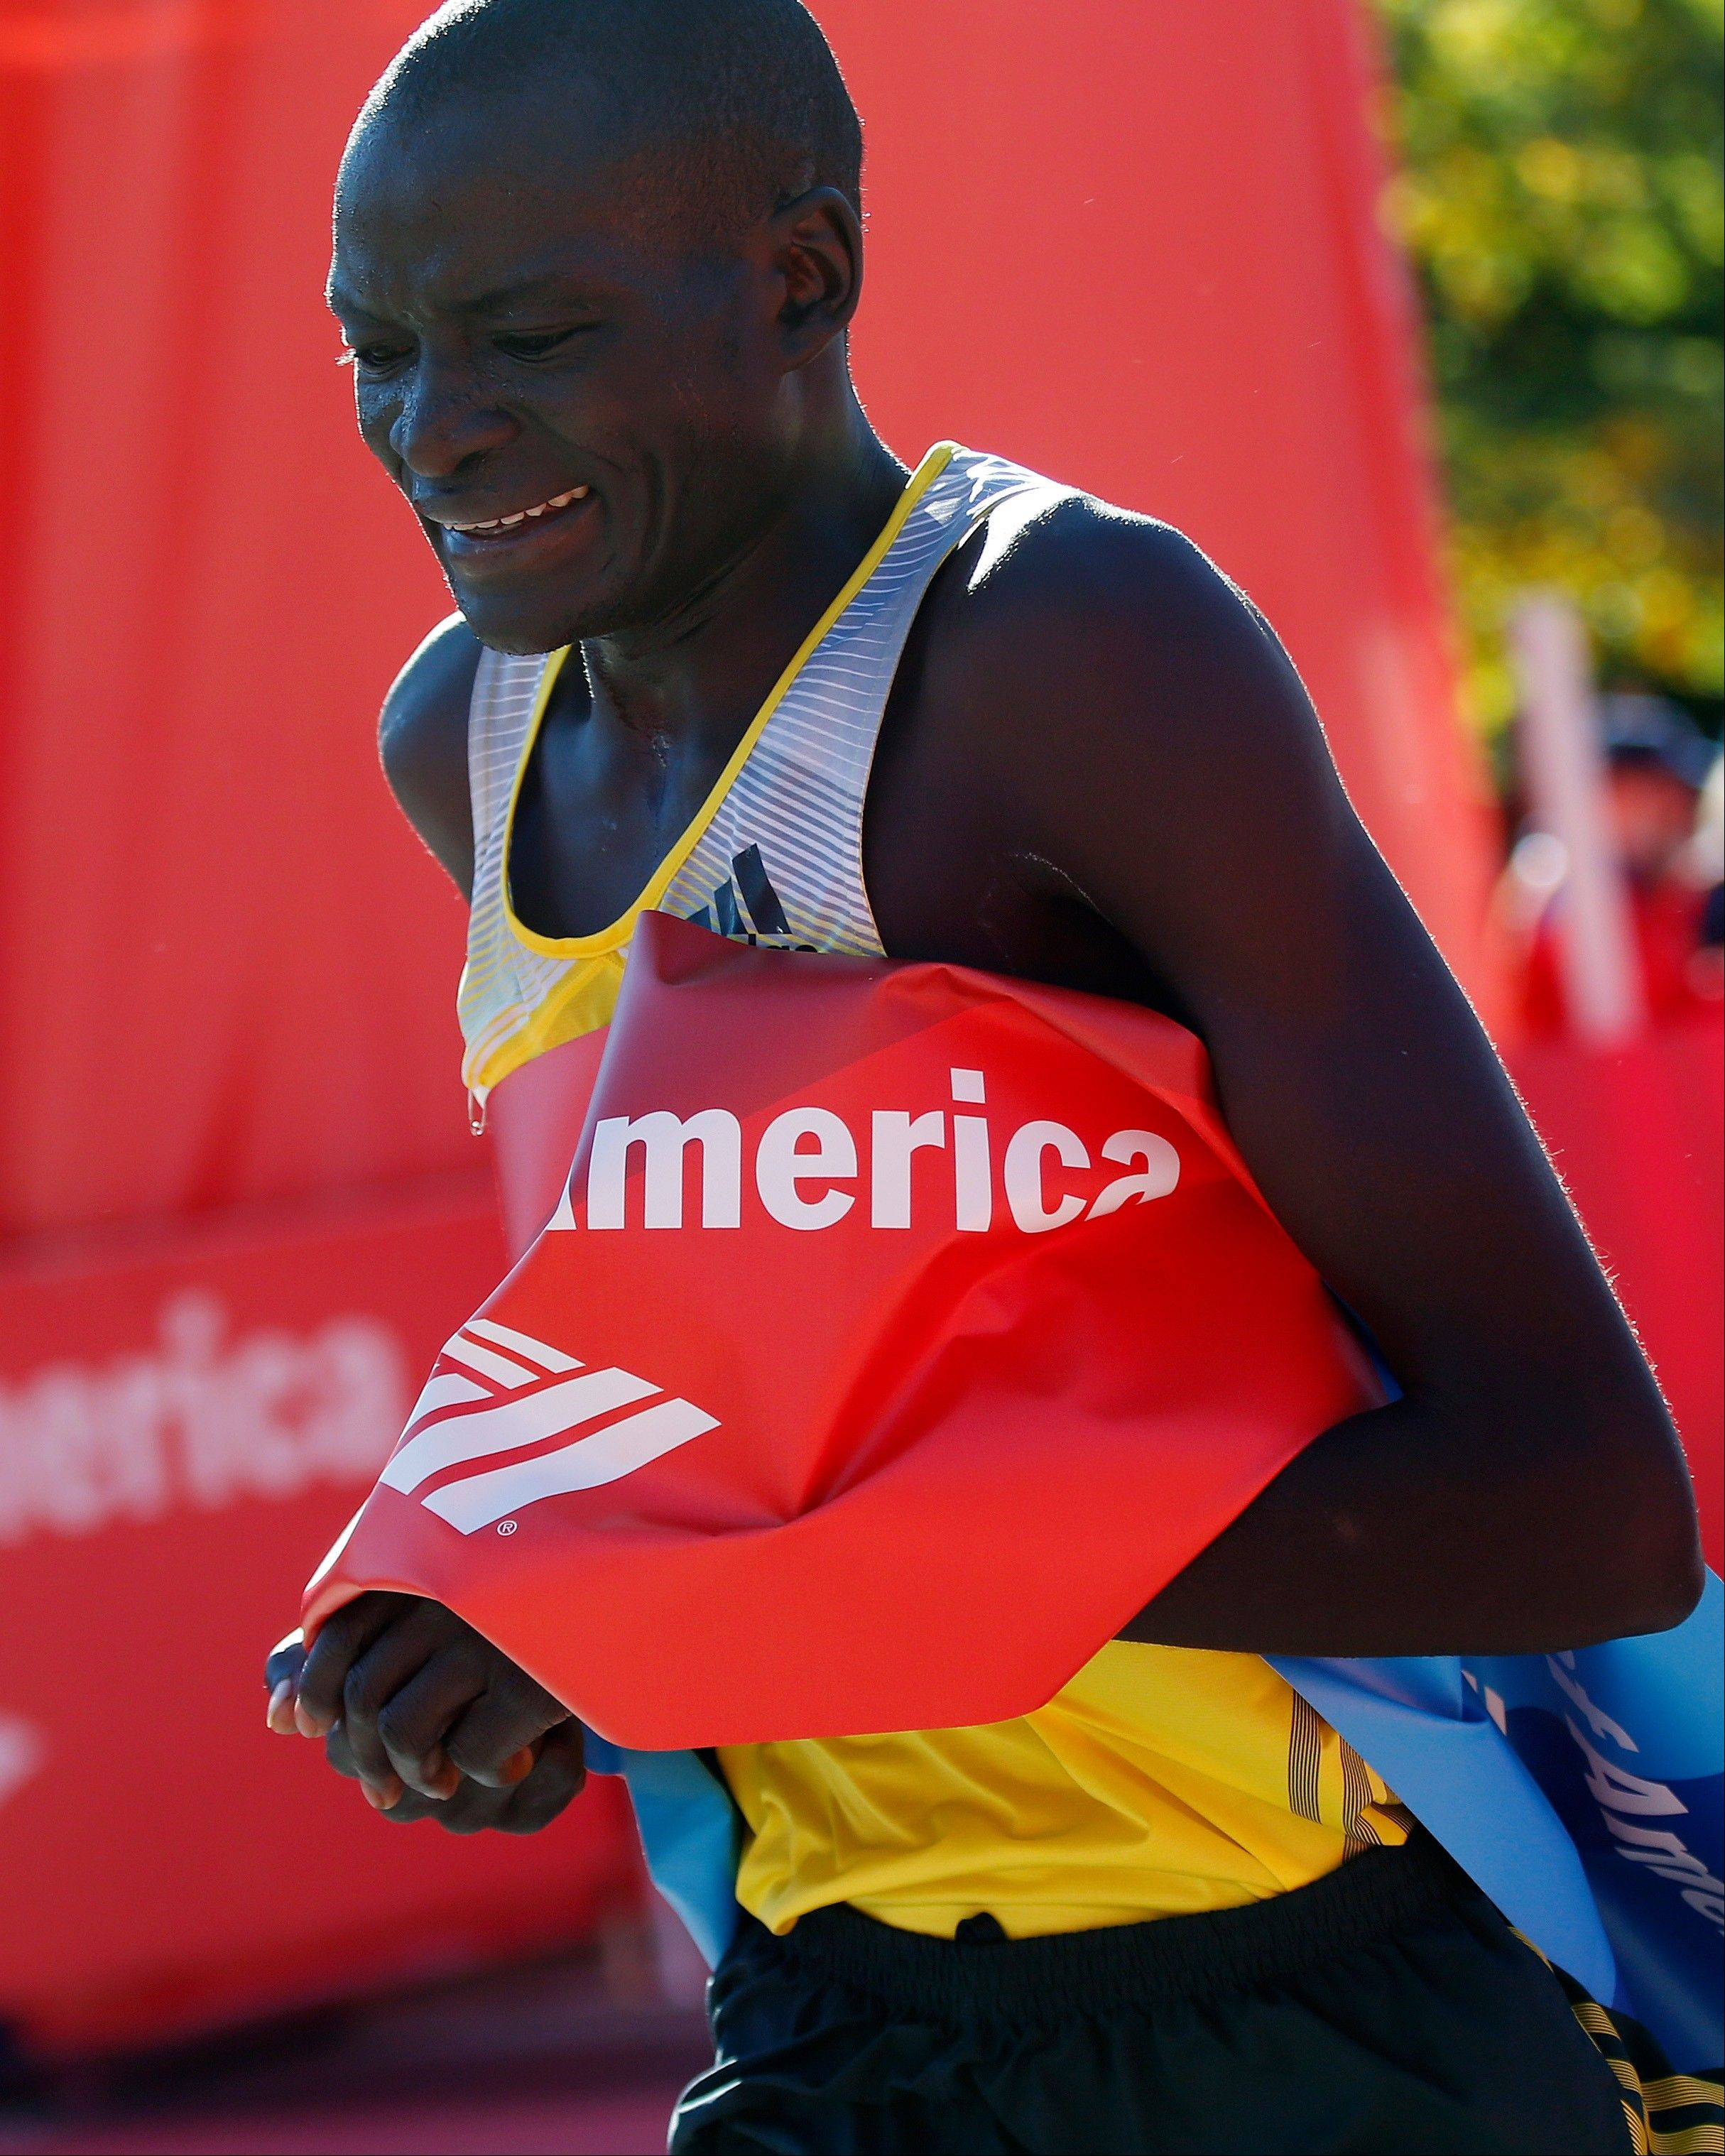 Dennis Kimetto of Kenya crosses the finish line to win the Chicago Marathon on Sunday in record time.